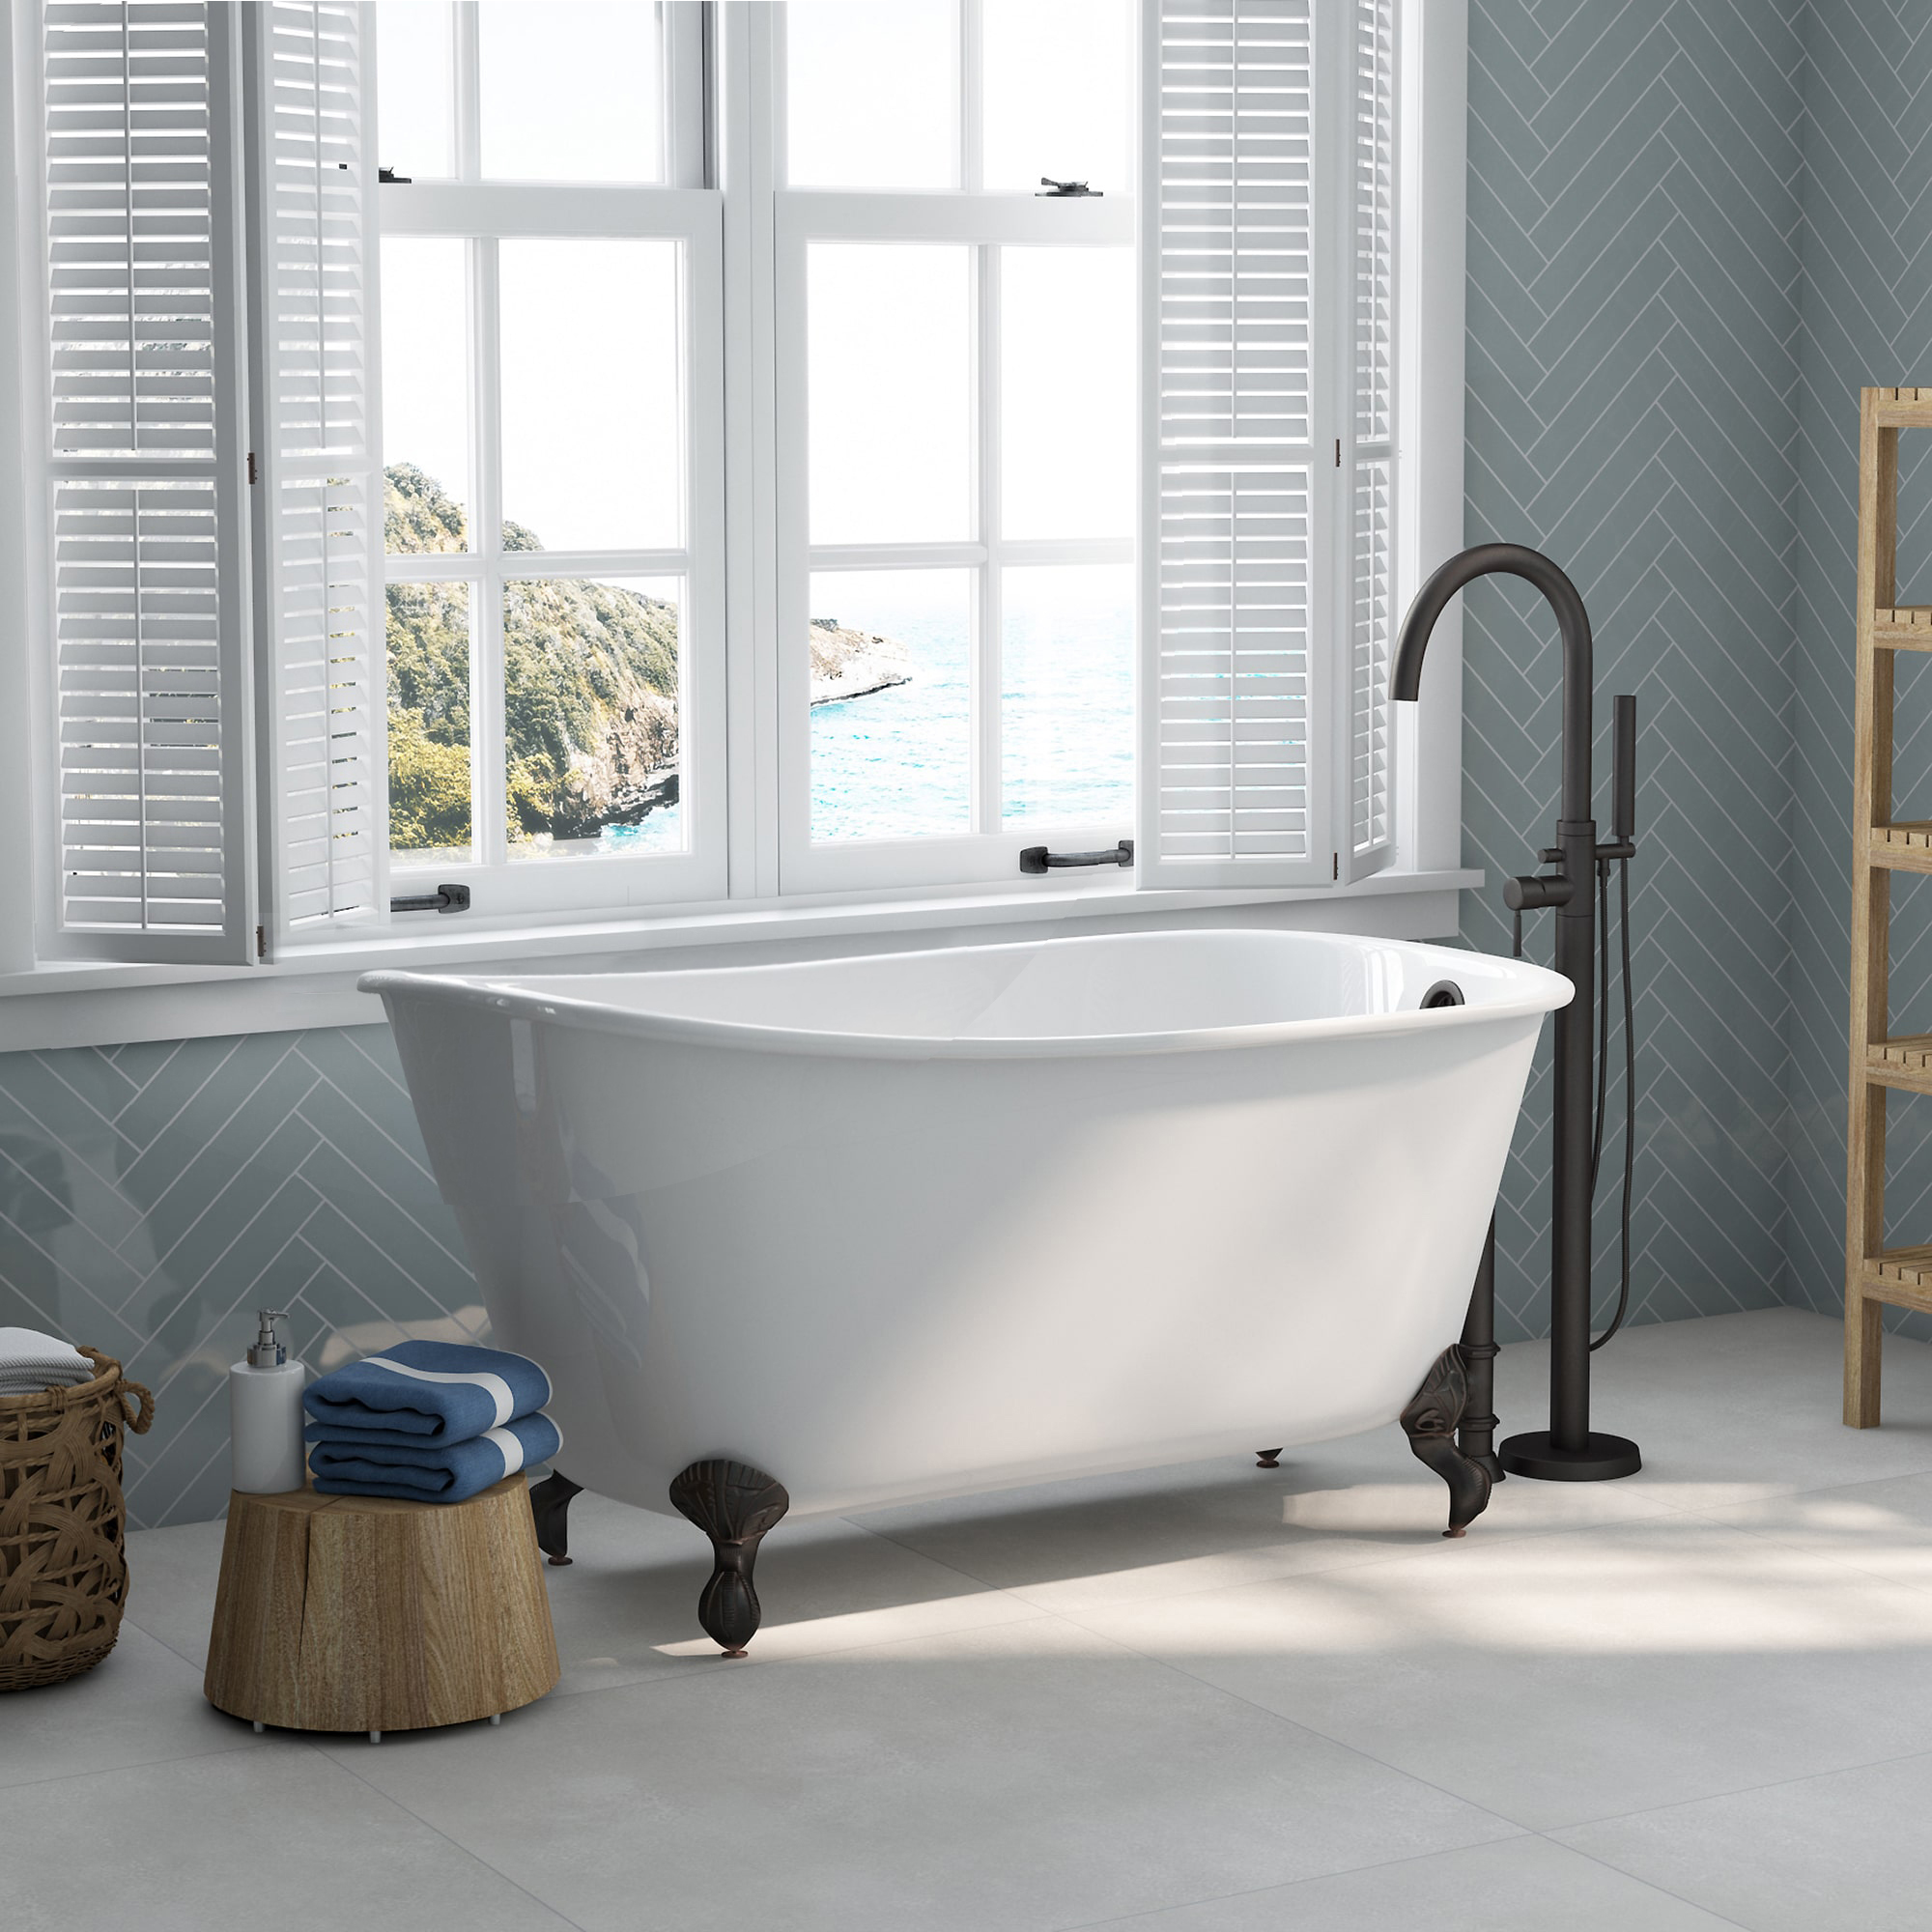 design tubs white in and interior charming deep ideas with soaker drop make beautiful sale wood large cabinets tub appealing kohler for decor your bathroom